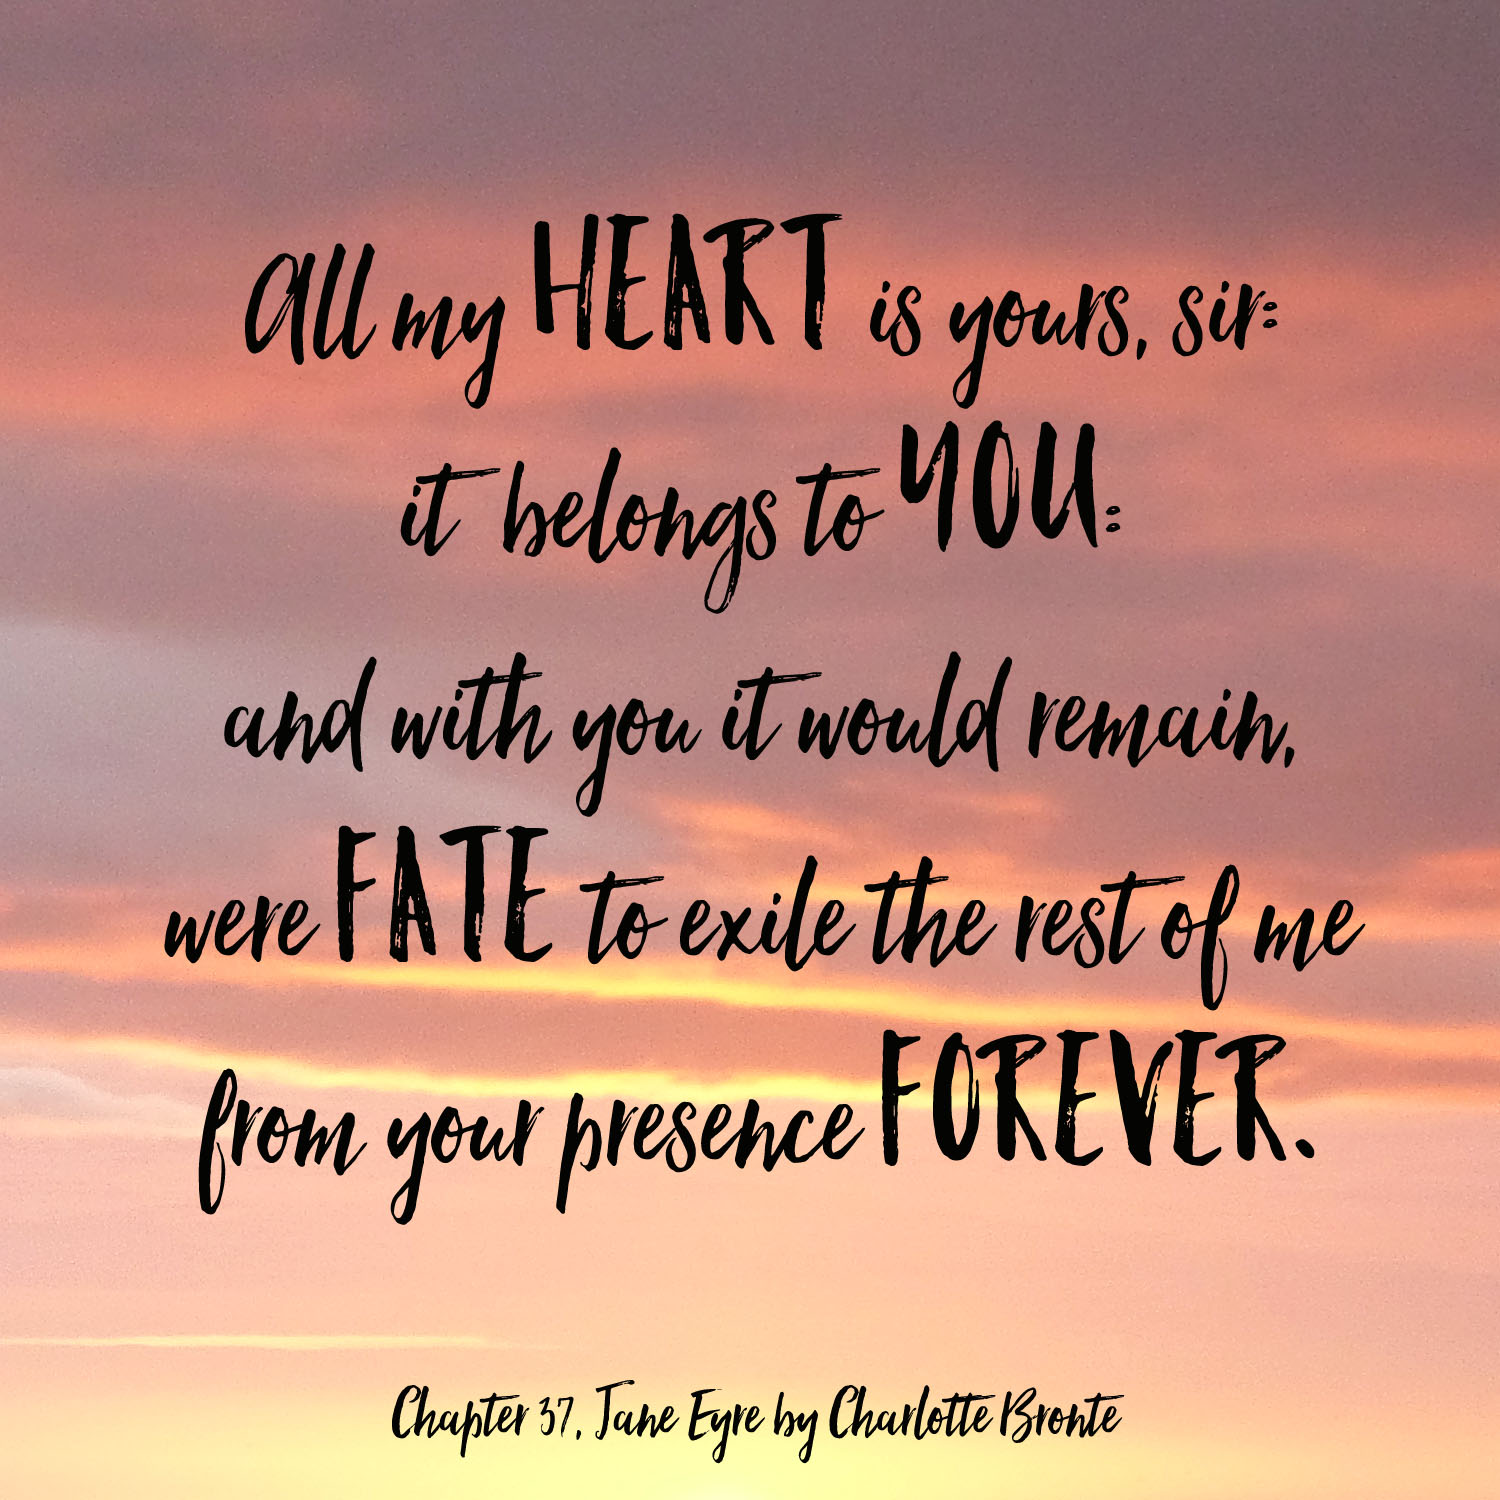 All my heart is yours sir Jane Eyre charlotte bronte quotes